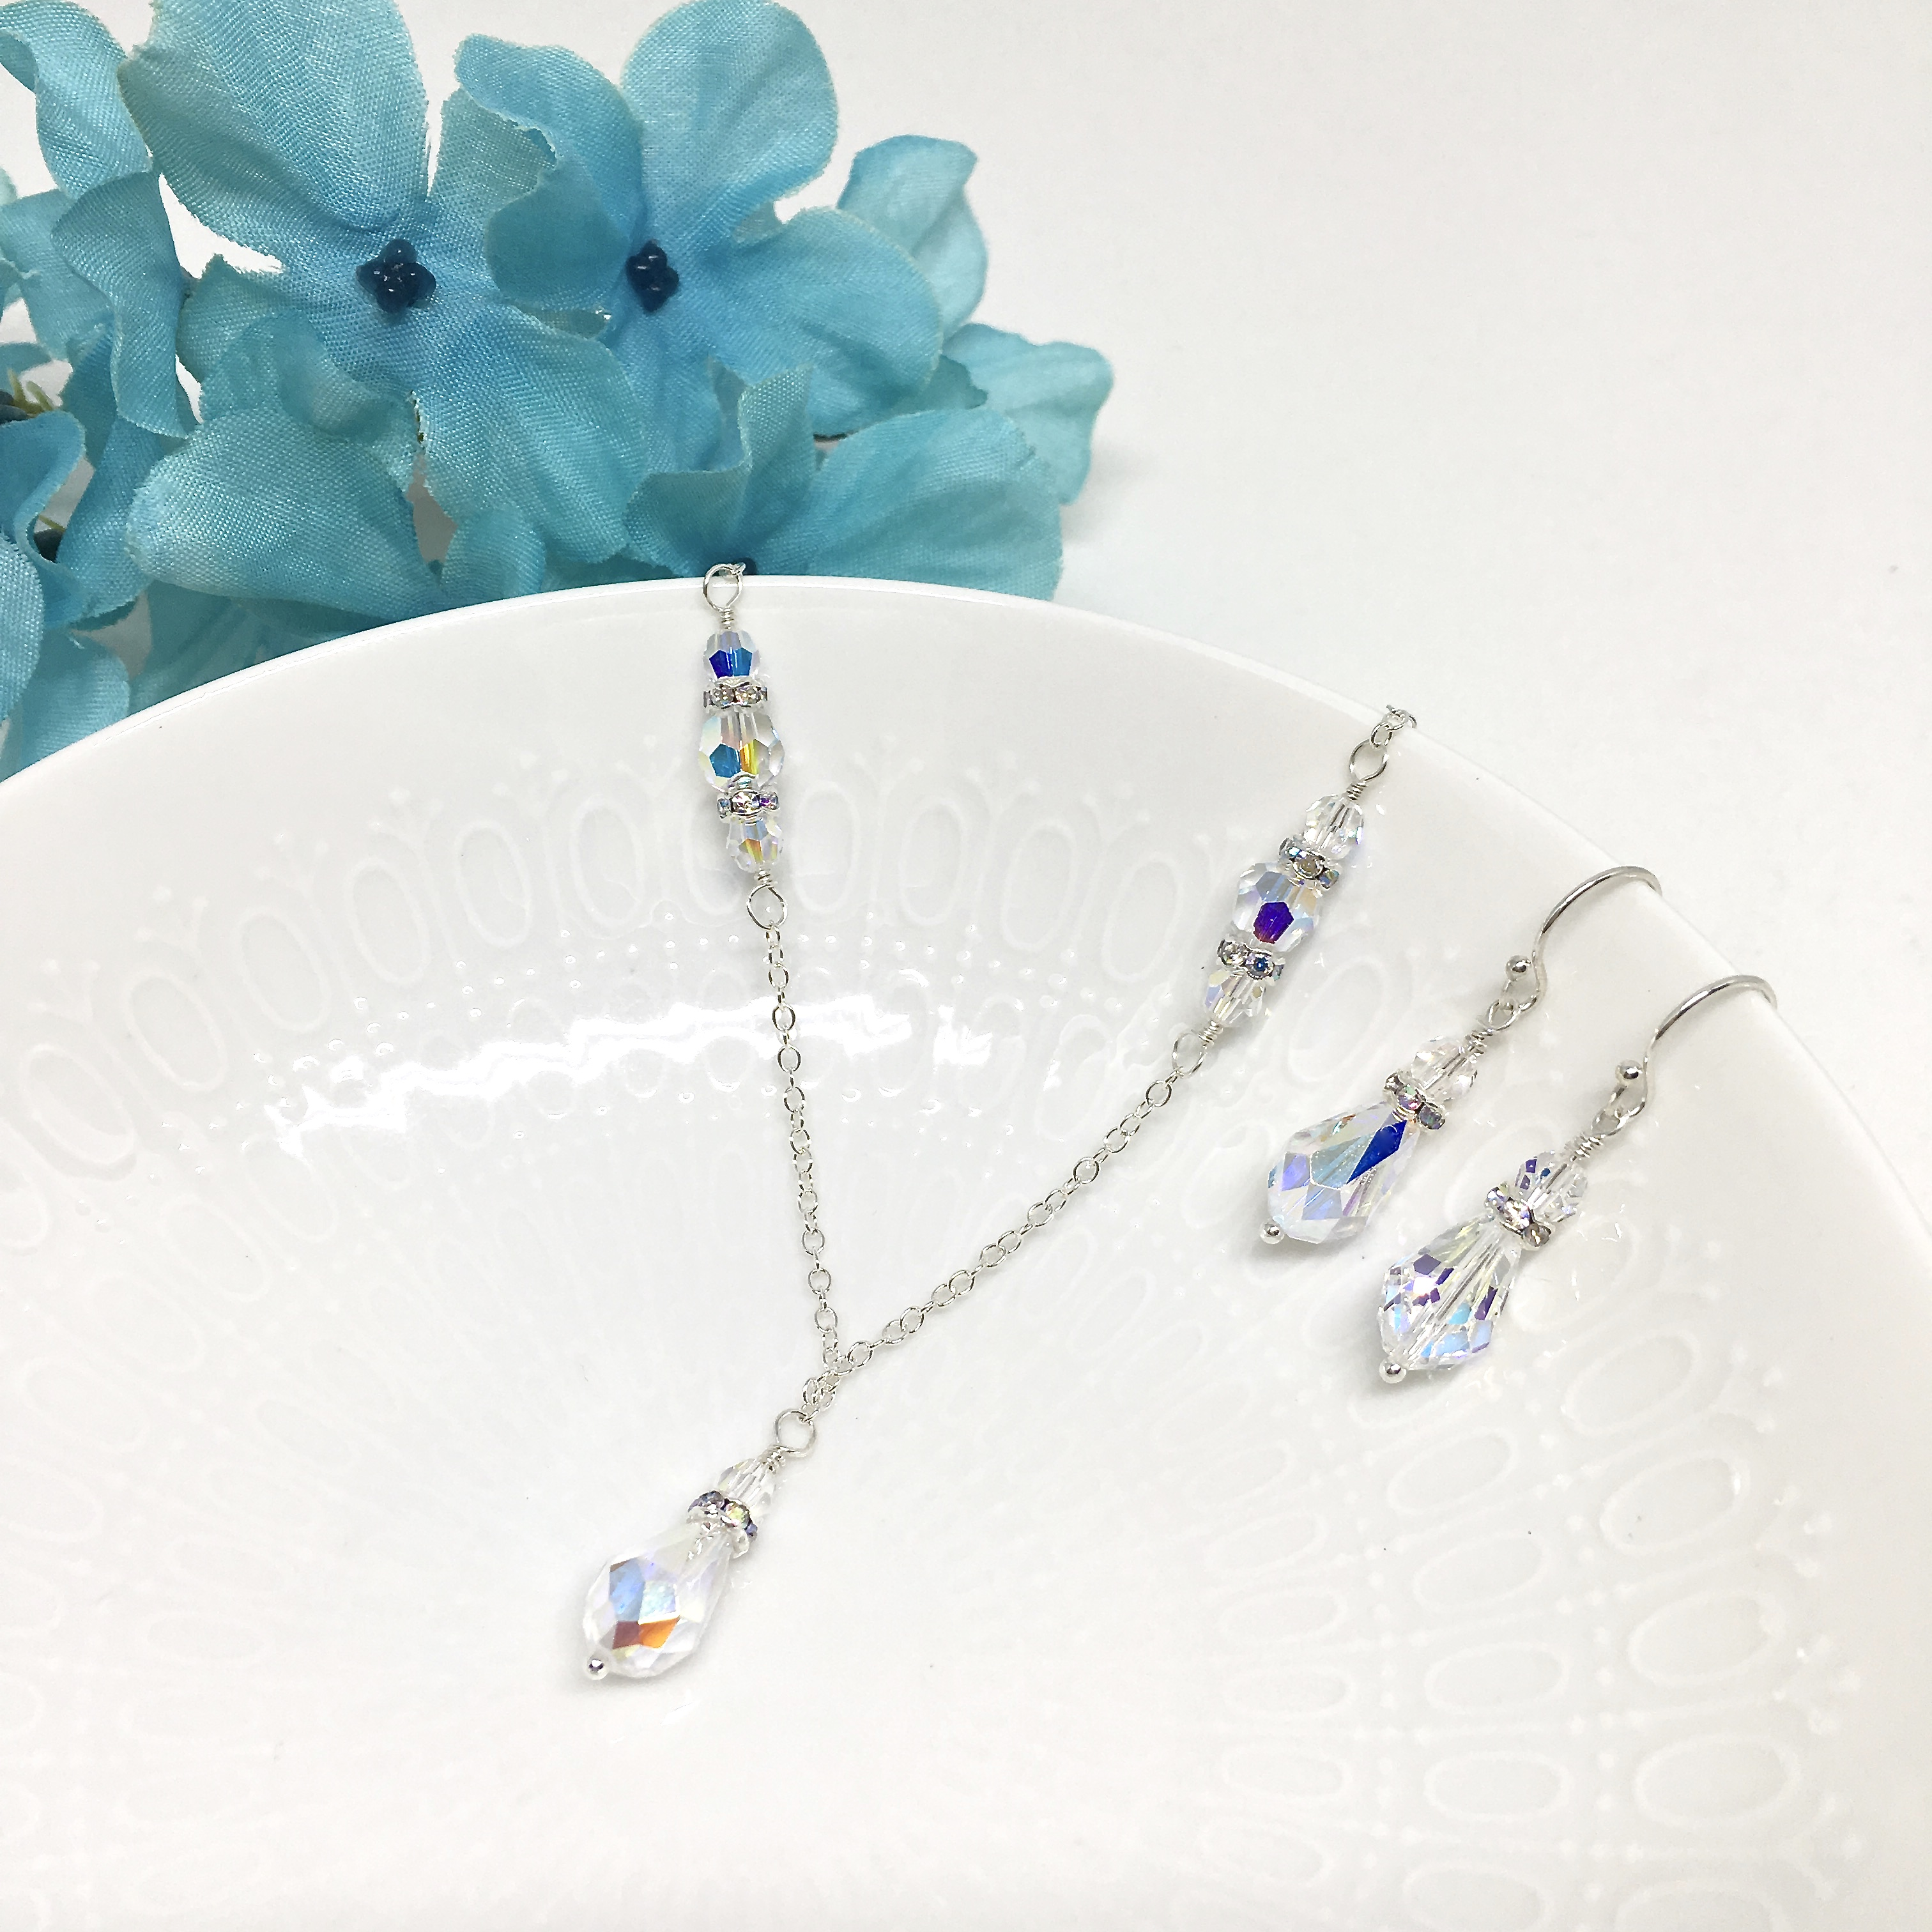 2e59a58d818328 $34.00 Select options · Flower Girl Jewelry Teardrop crystal Necklace